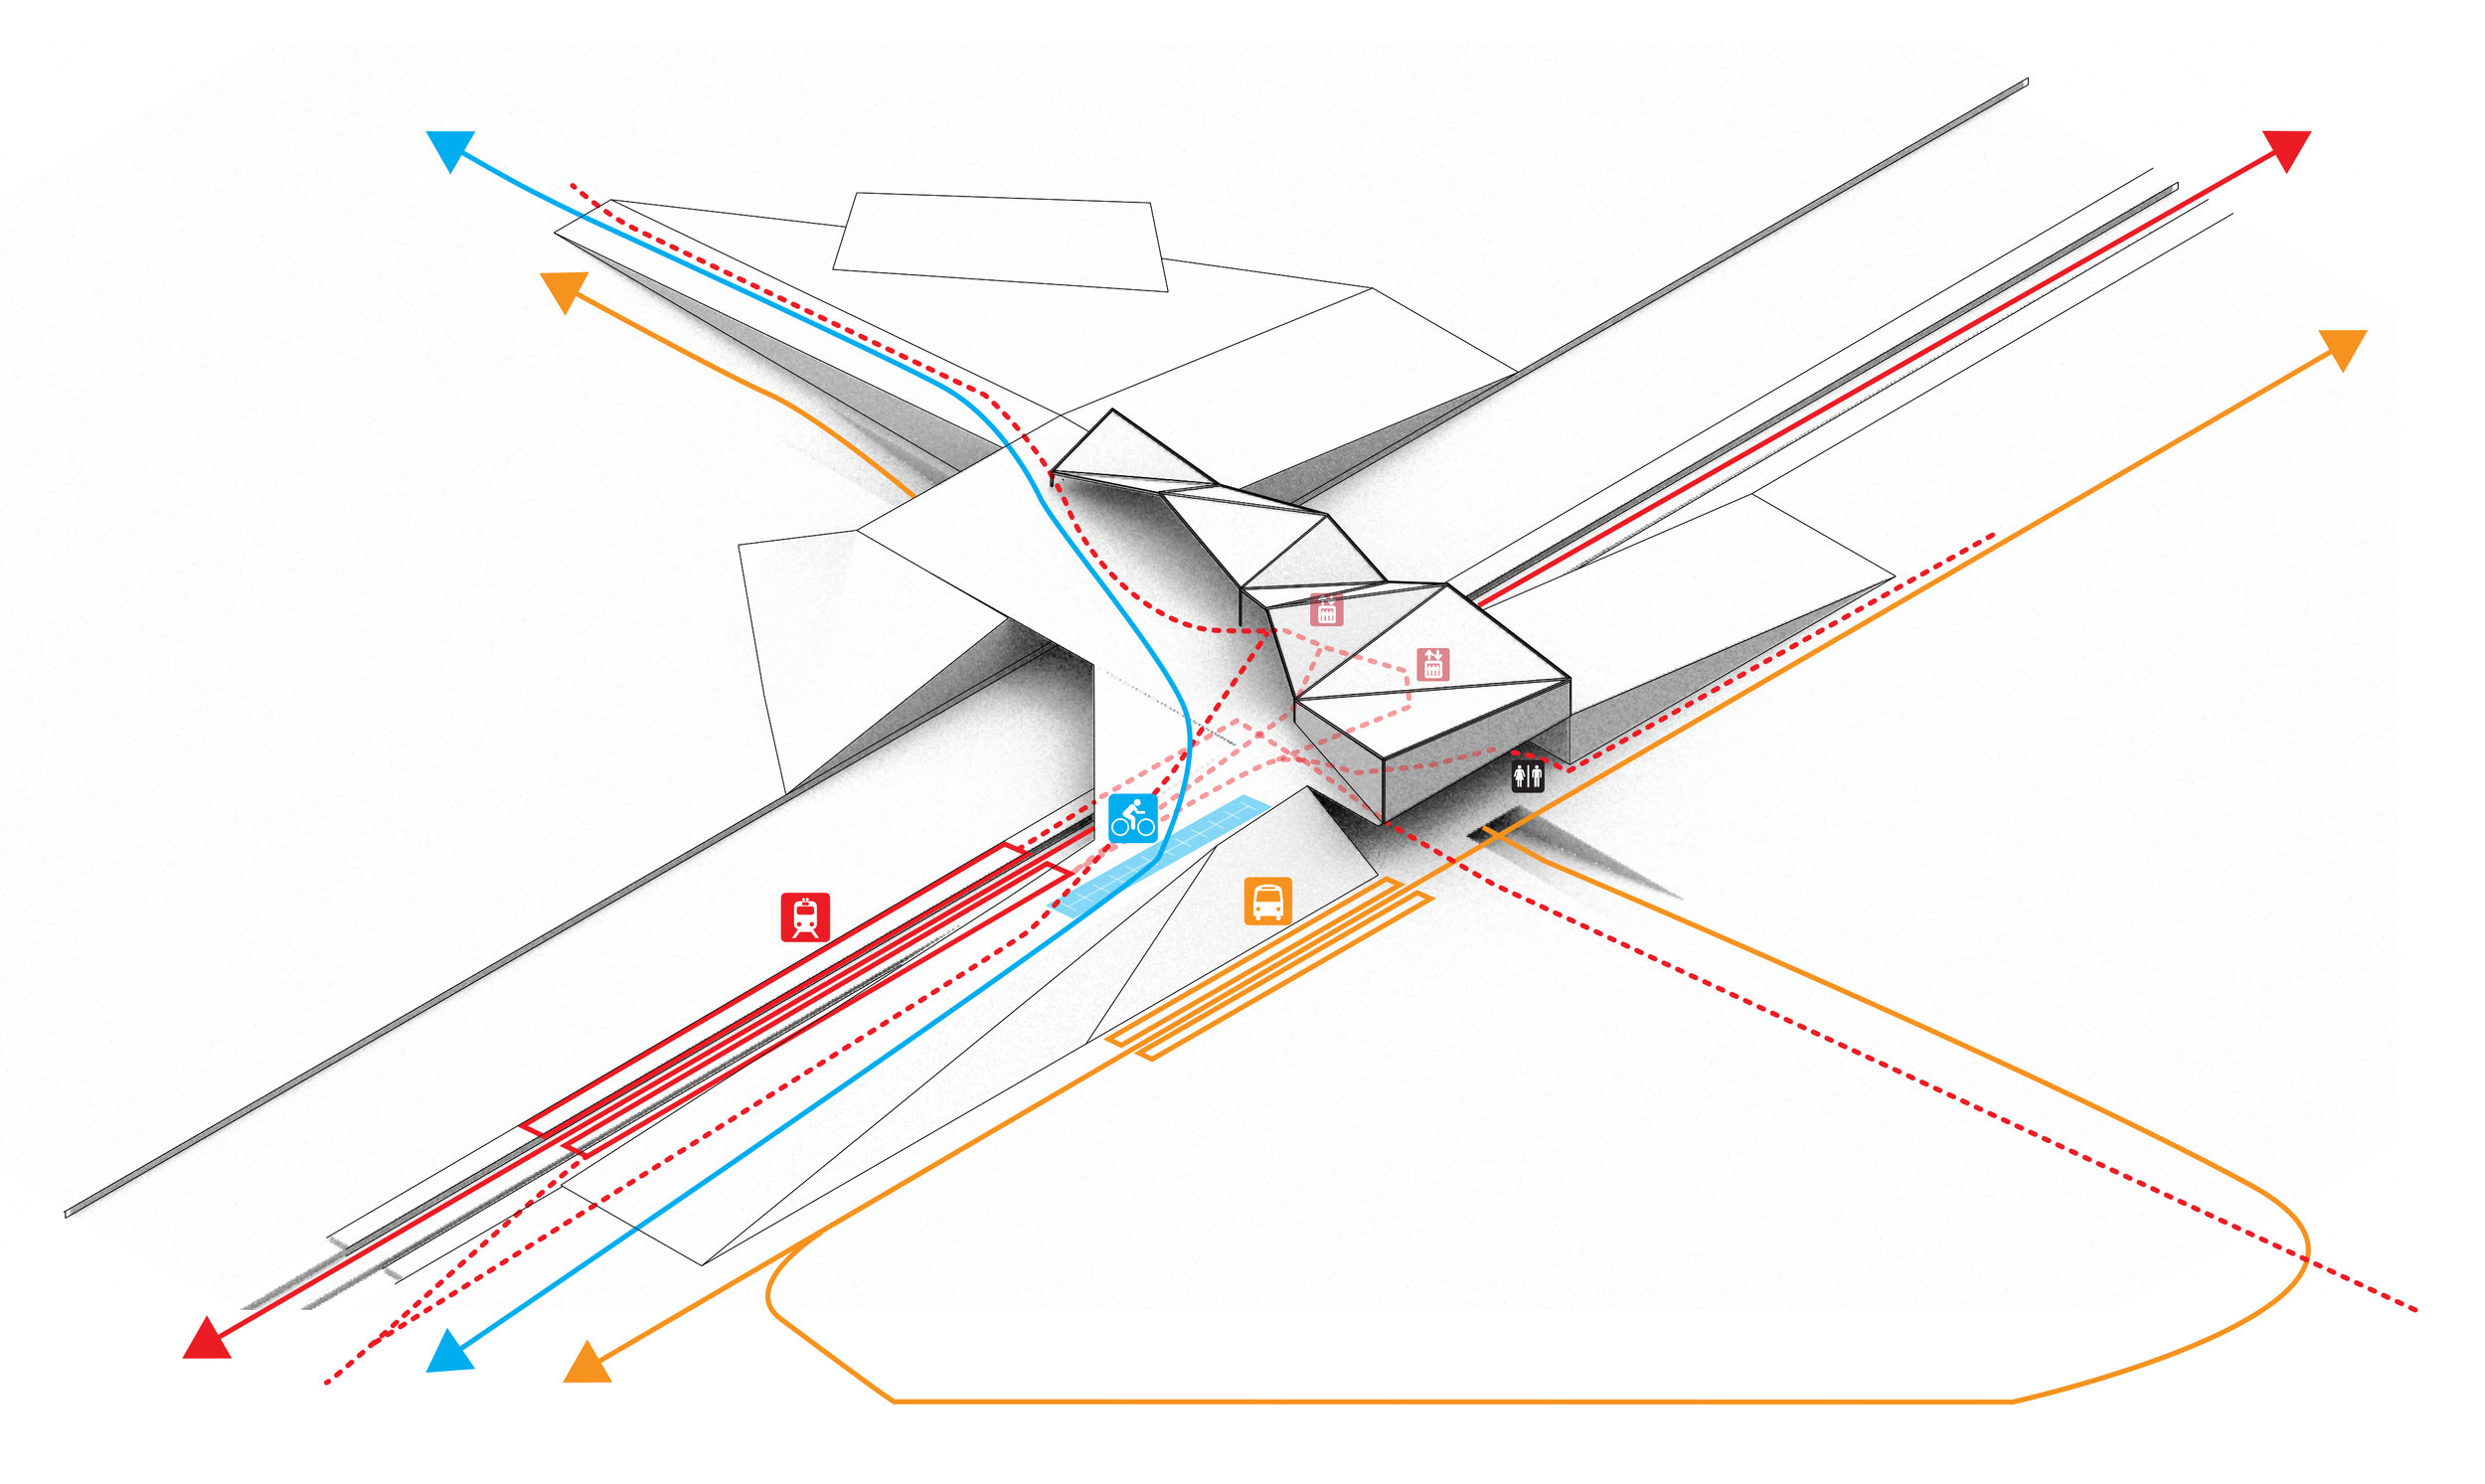 Will Young  (ENVD 3100 - Fall 2018): Circulation diagram of a proposed commuter rail hub in RiNo Art District, Denver